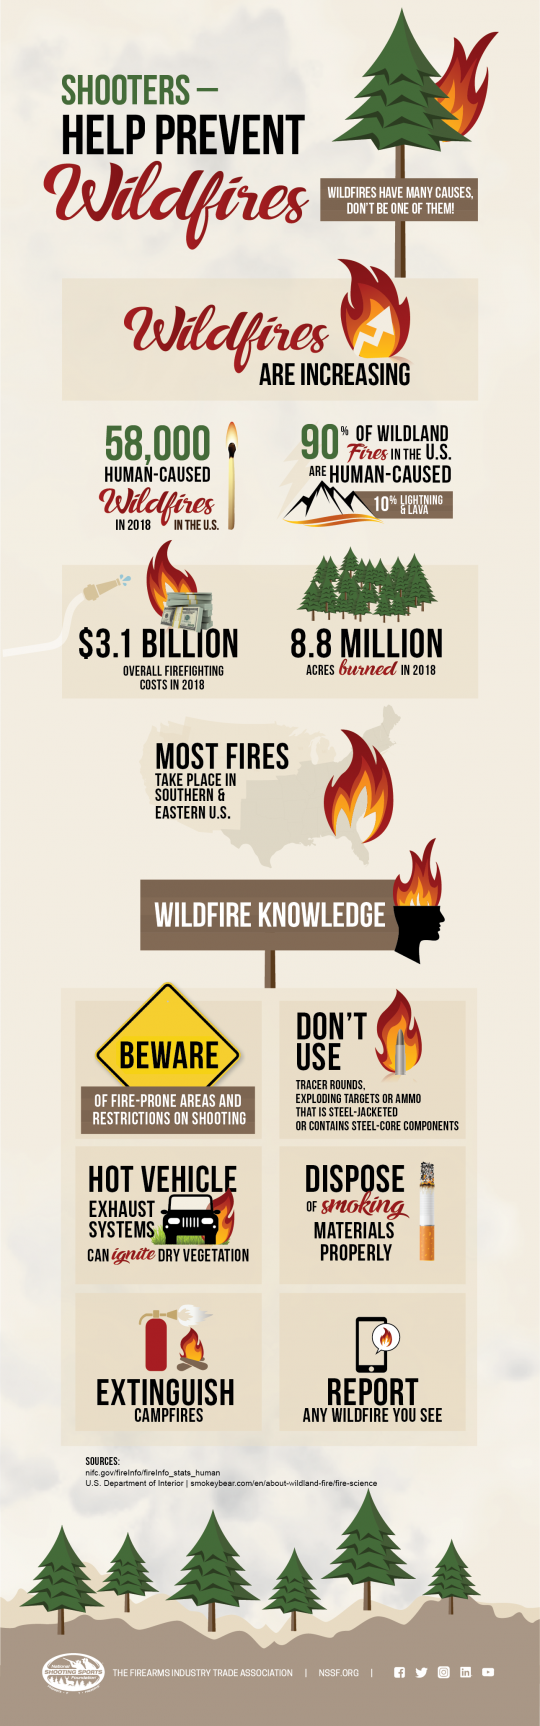 Shooters - Help Prevent Wildfires